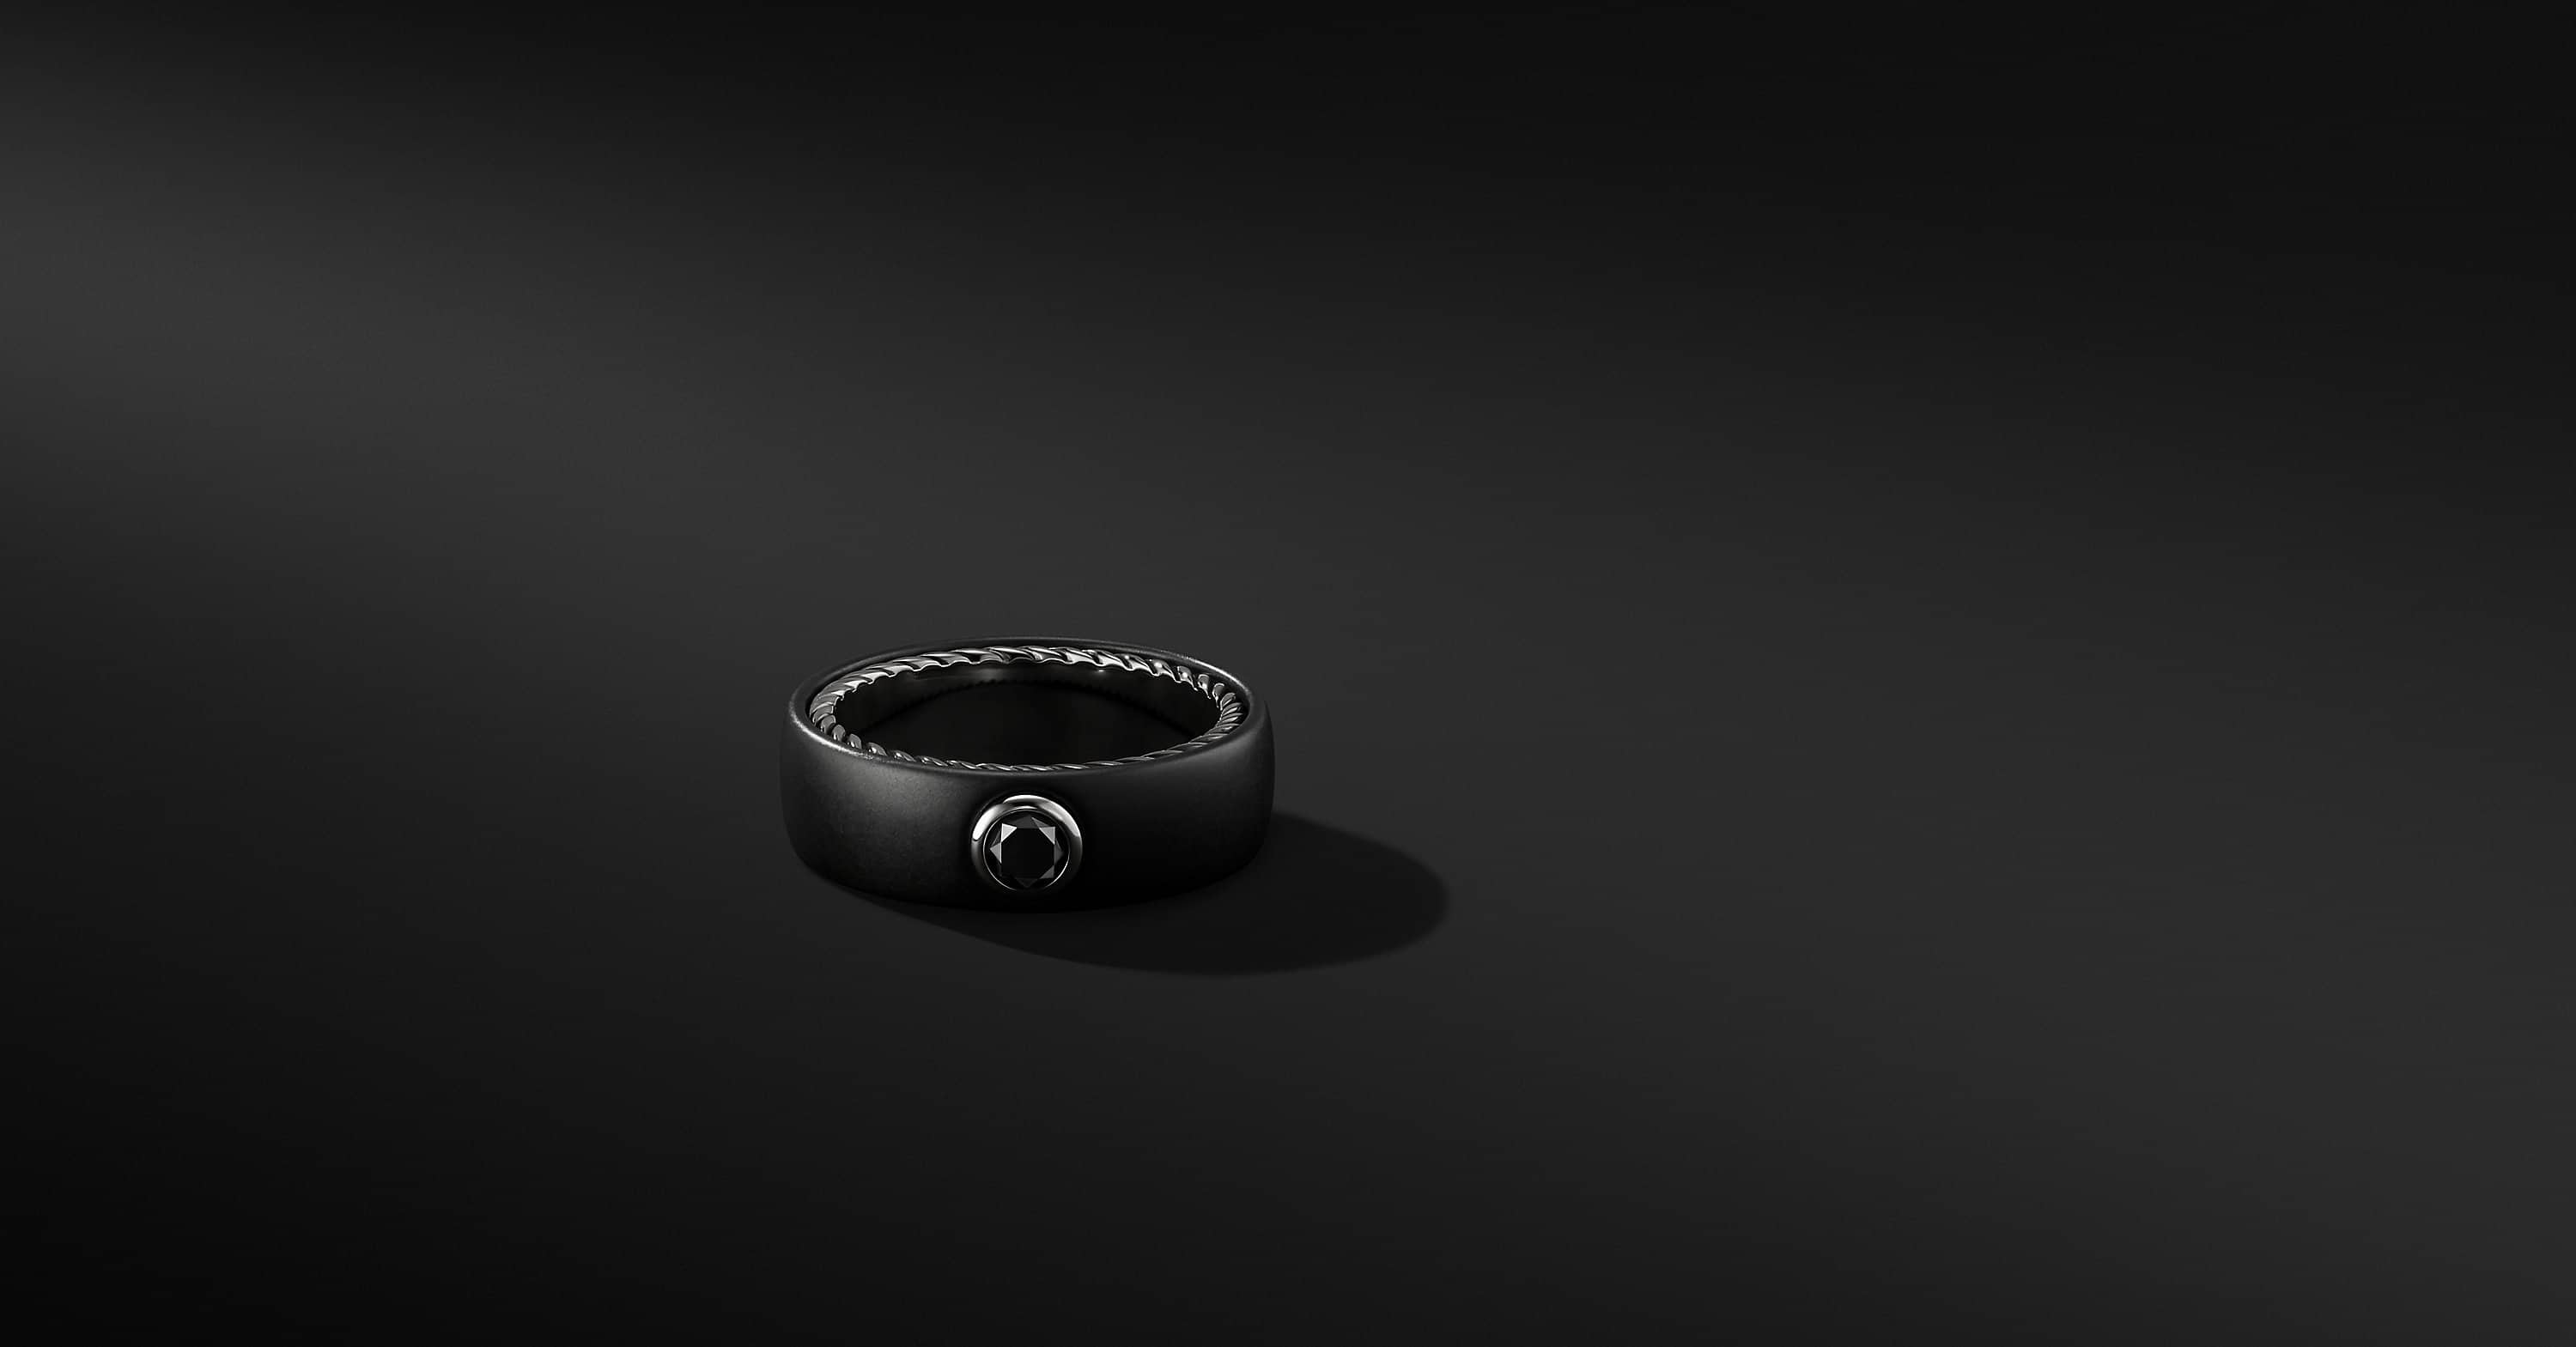 Streamline Band in Black Titanium with Black Diamond, 8mm